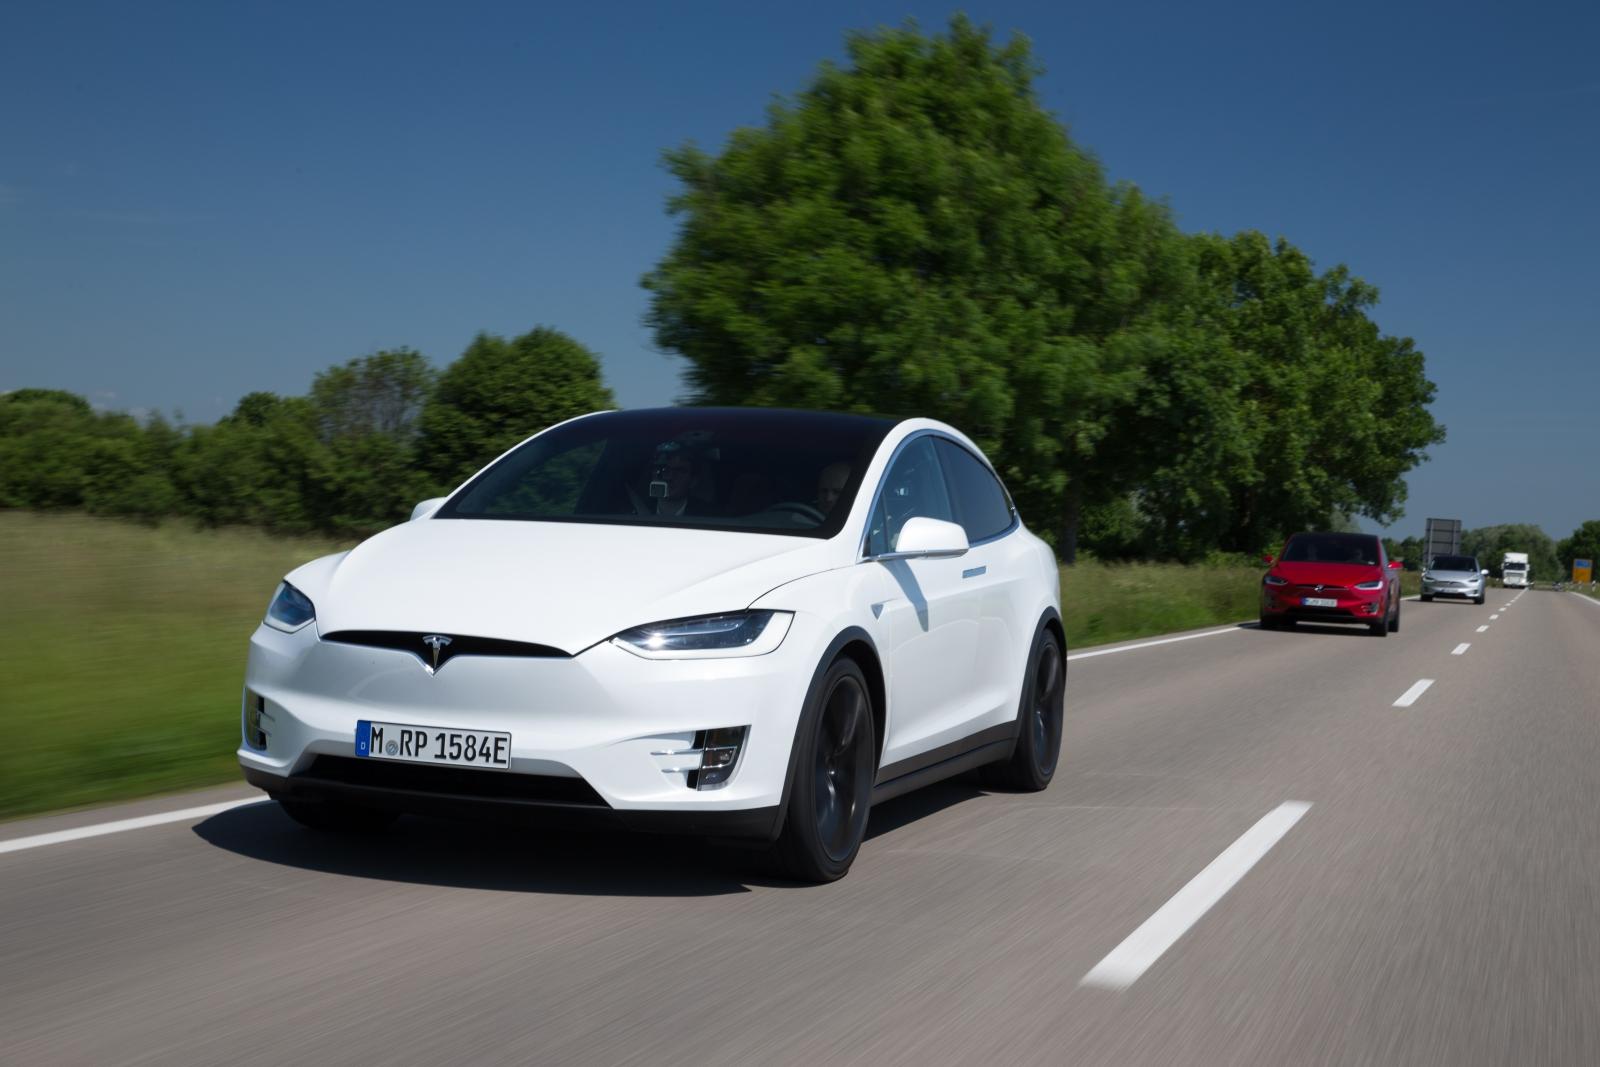 tesla model x uk prices and release date revealed starting from 67 100. Black Bedroom Furniture Sets. Home Design Ideas